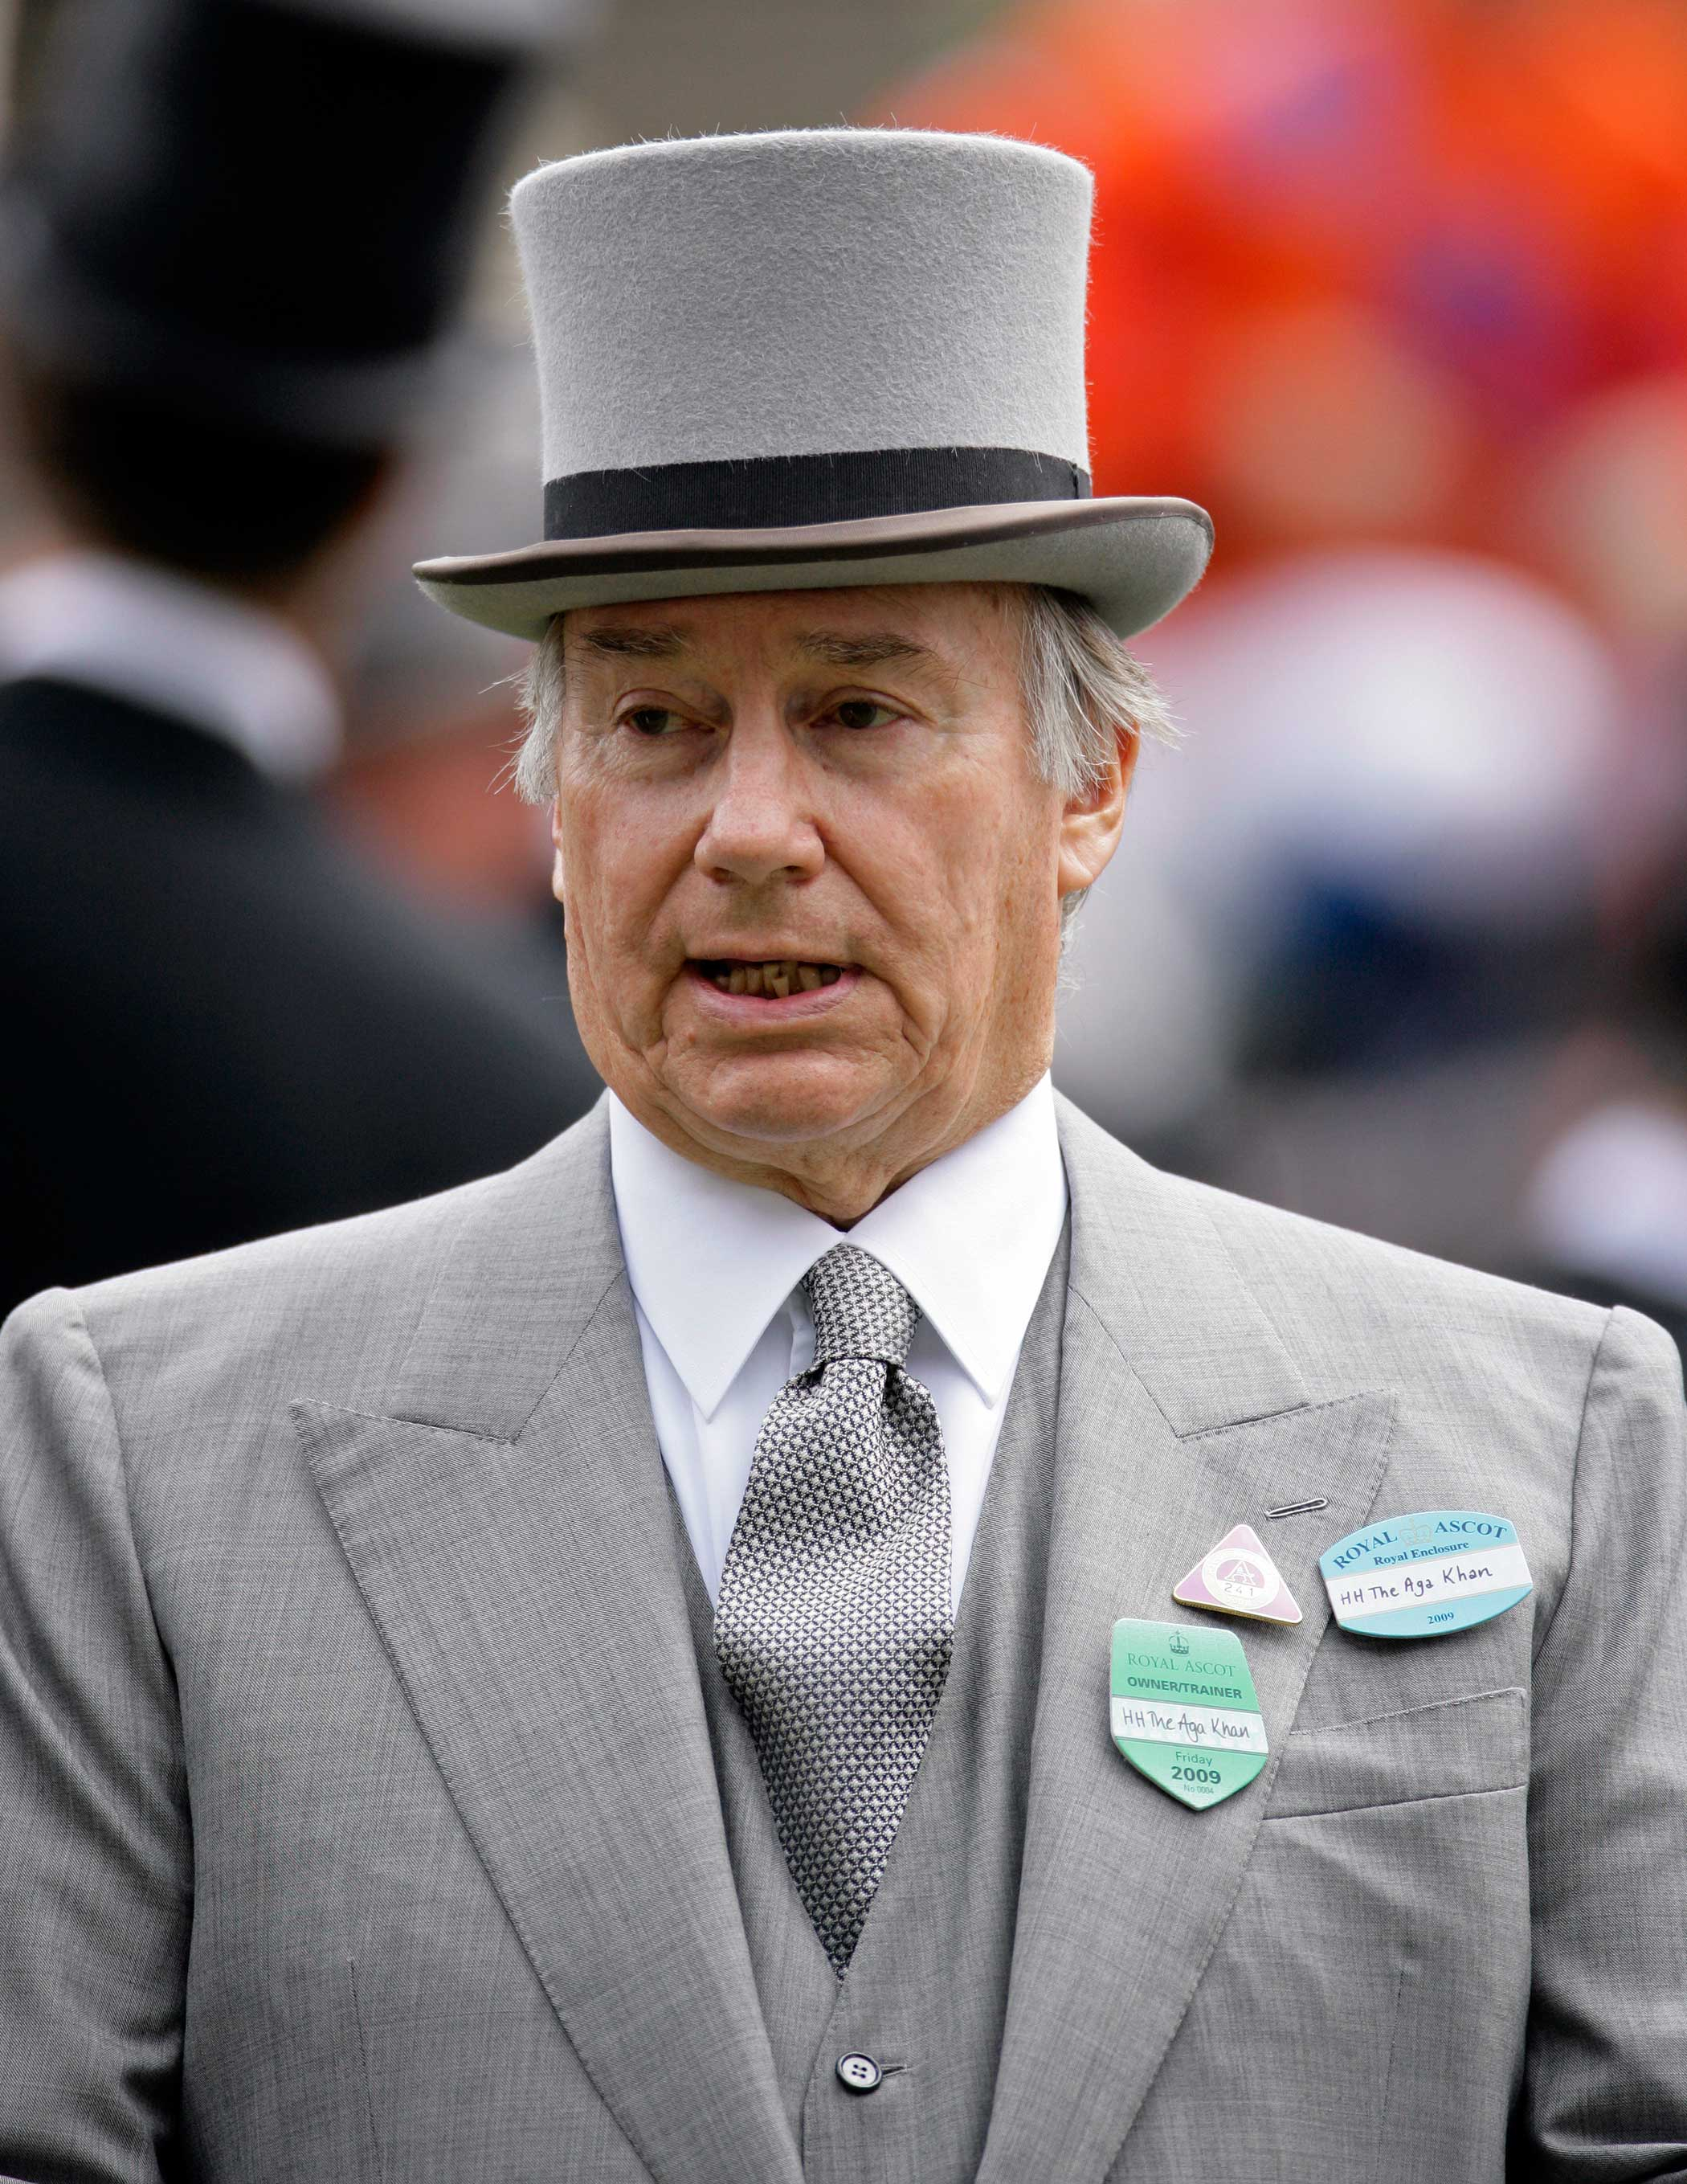 Shah Karim al-Hussayni, HH The Aga Khan attends Royal Ascot races at Ascot Racecourse on June 19, 2009 in Ascot, England.